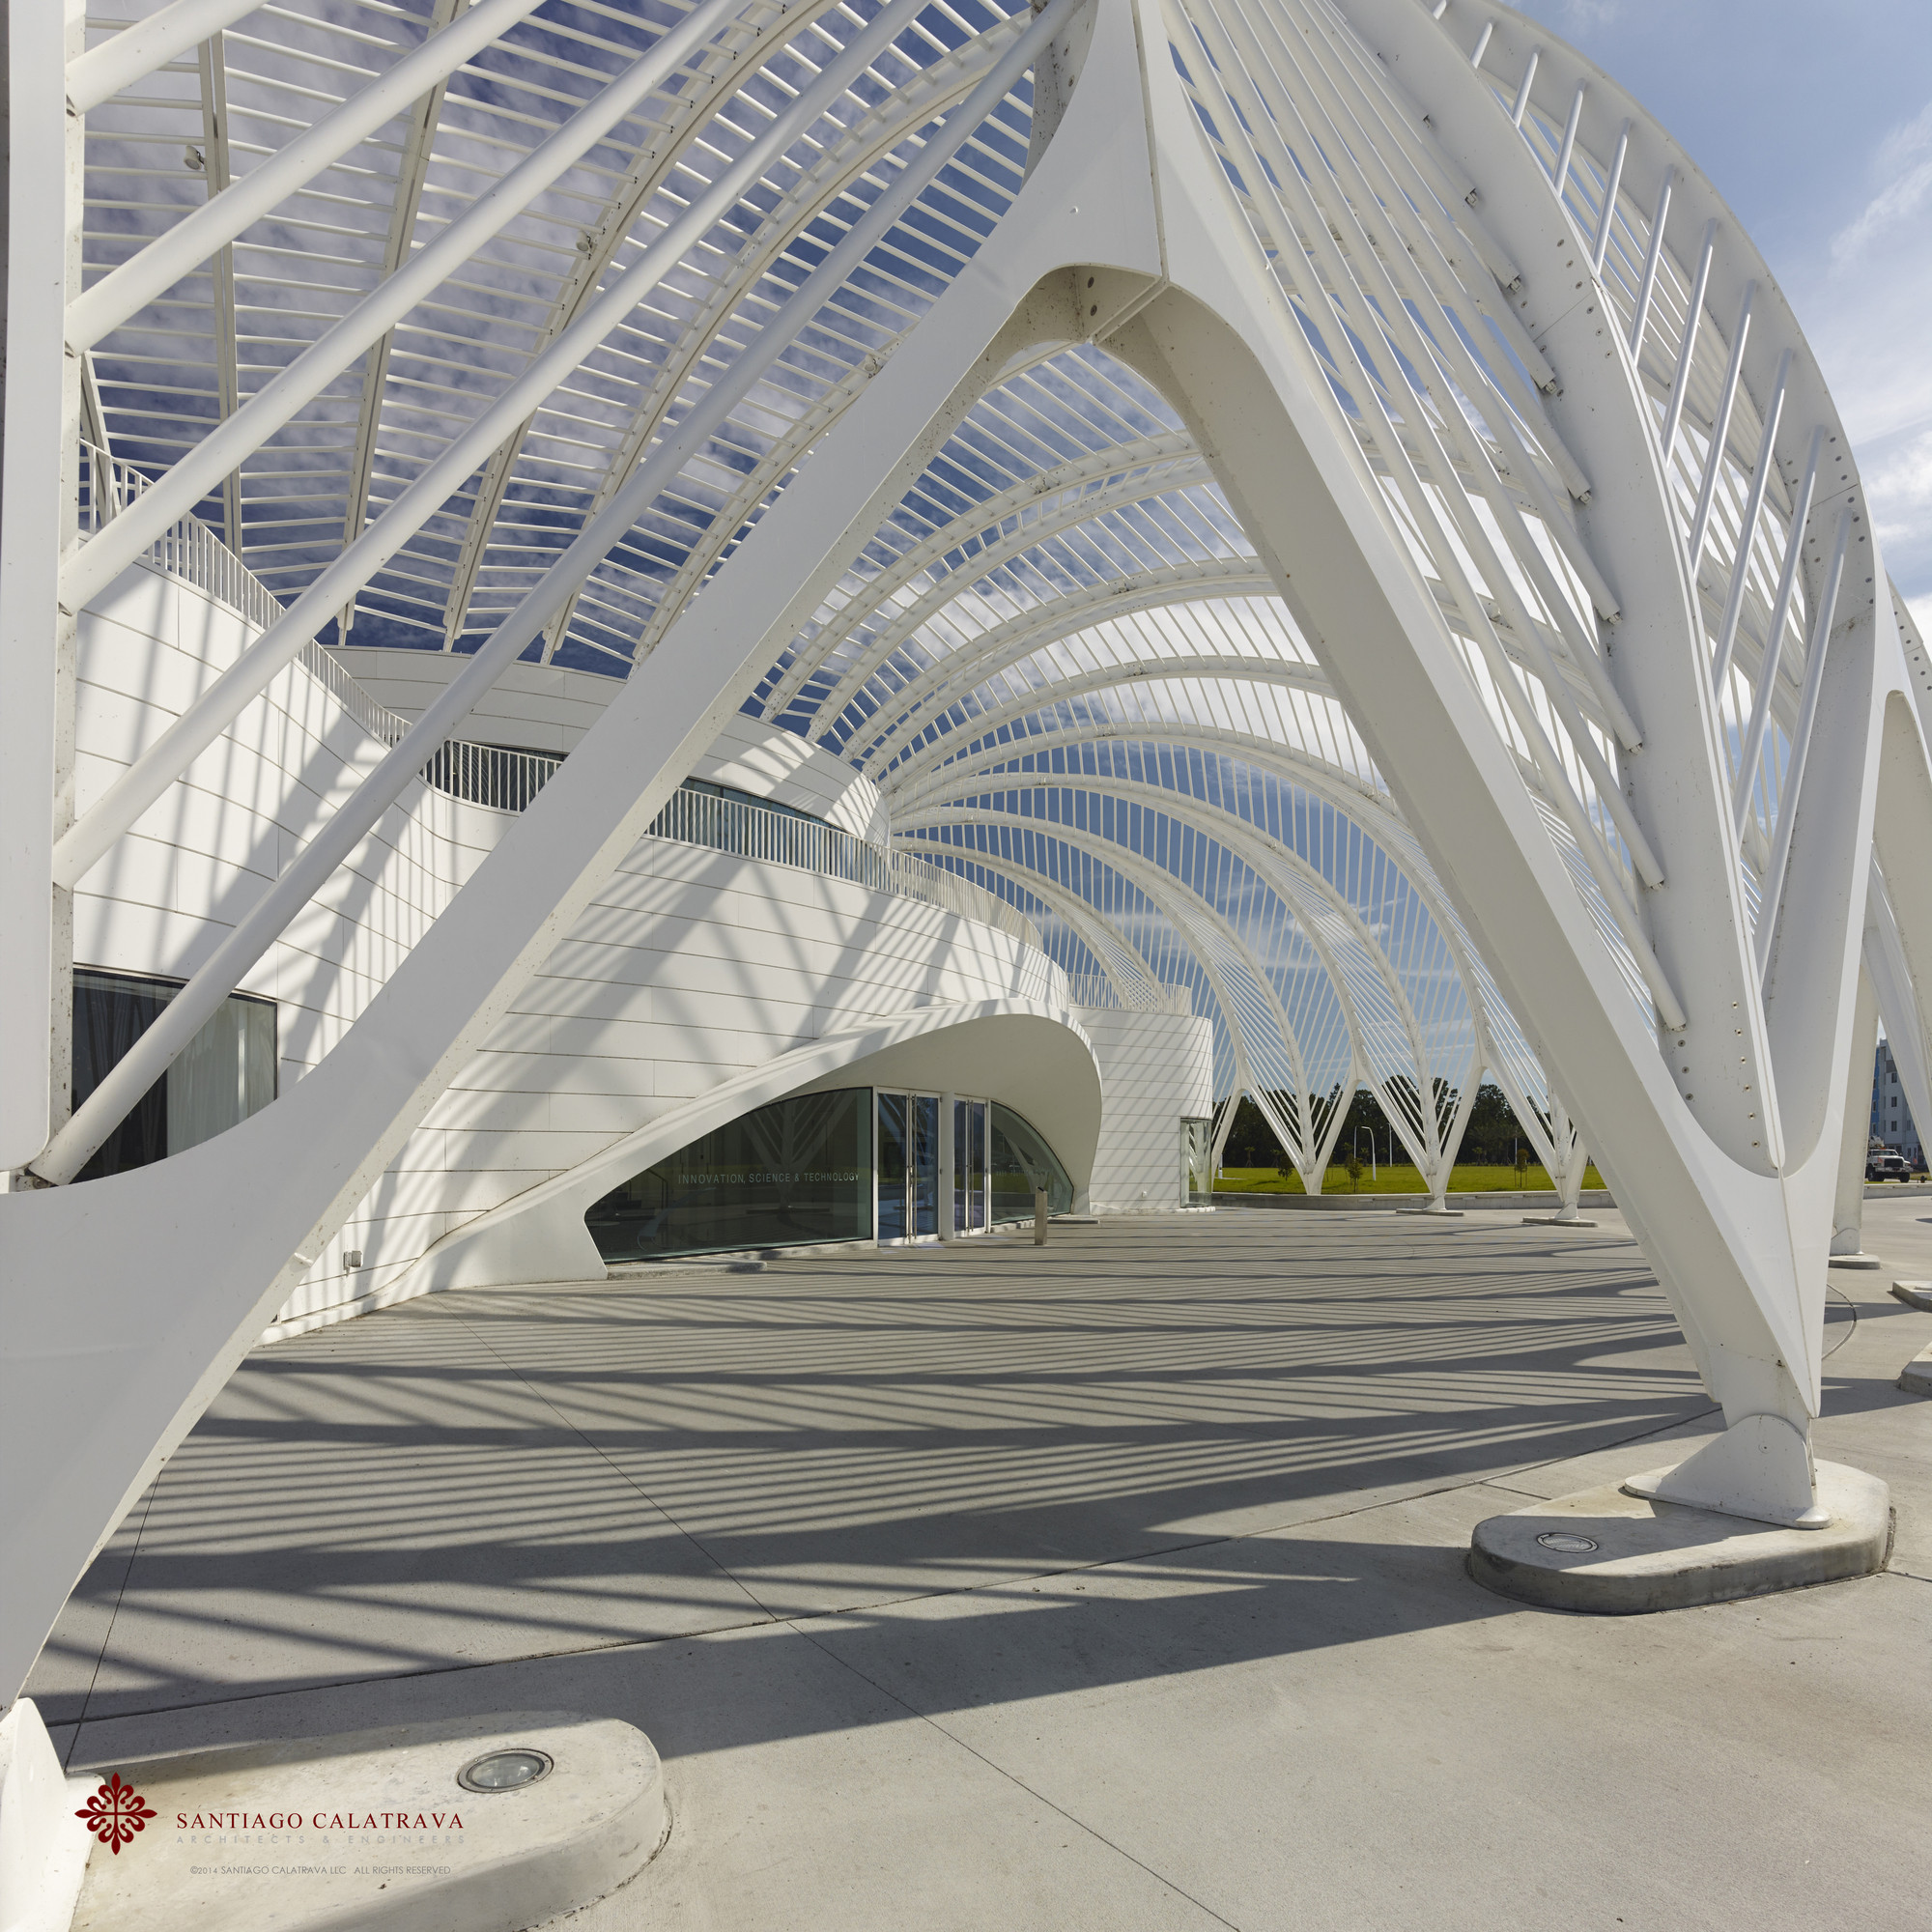 In defense of santiago calatrava archdaily for City polytechnic high school of engineering architecture and technology